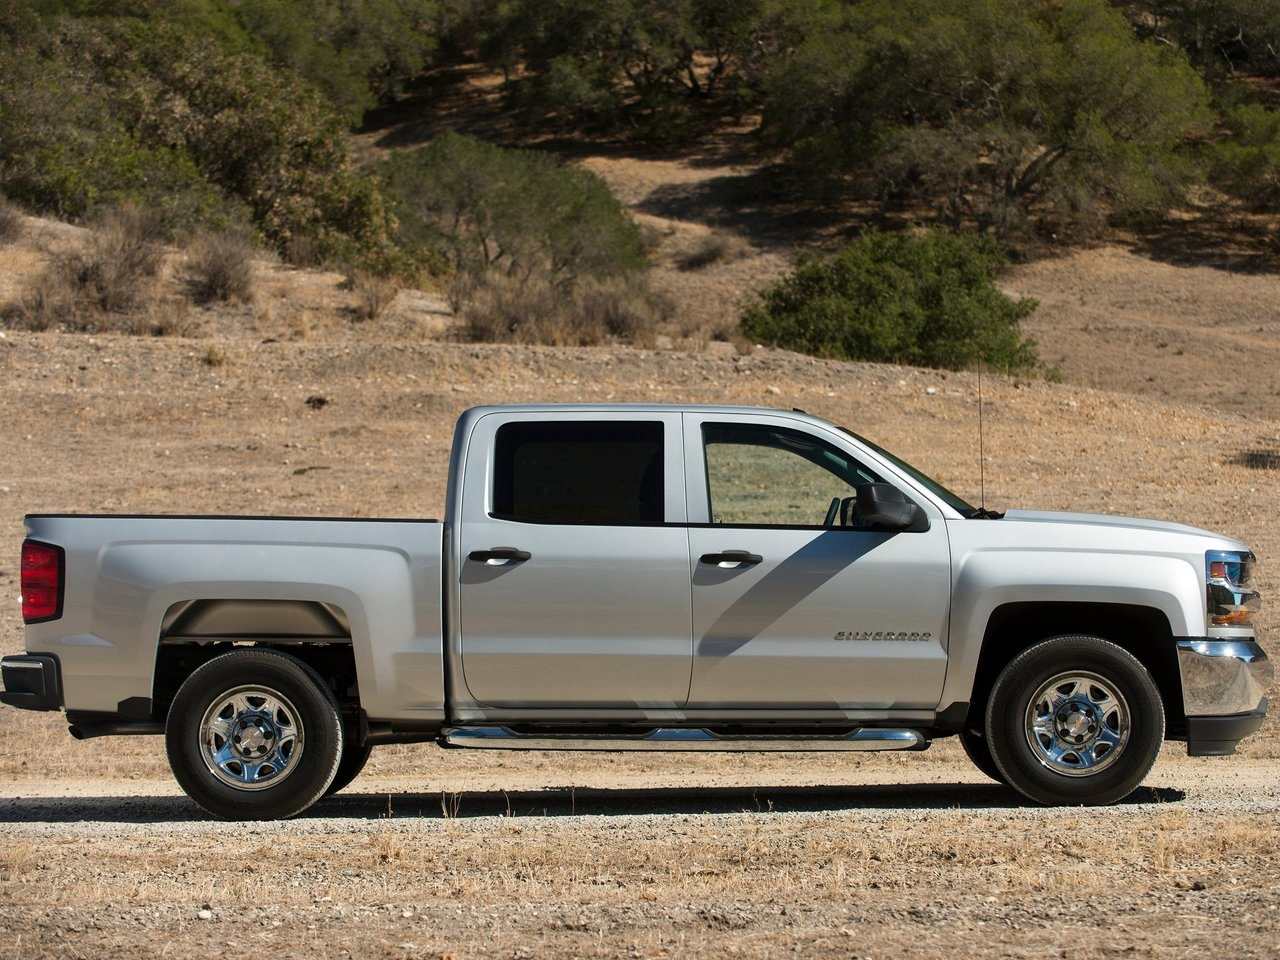 2018 chevrolet silverado 1500 diesel full review price and specs. Black Bedroom Furniture Sets. Home Design Ideas